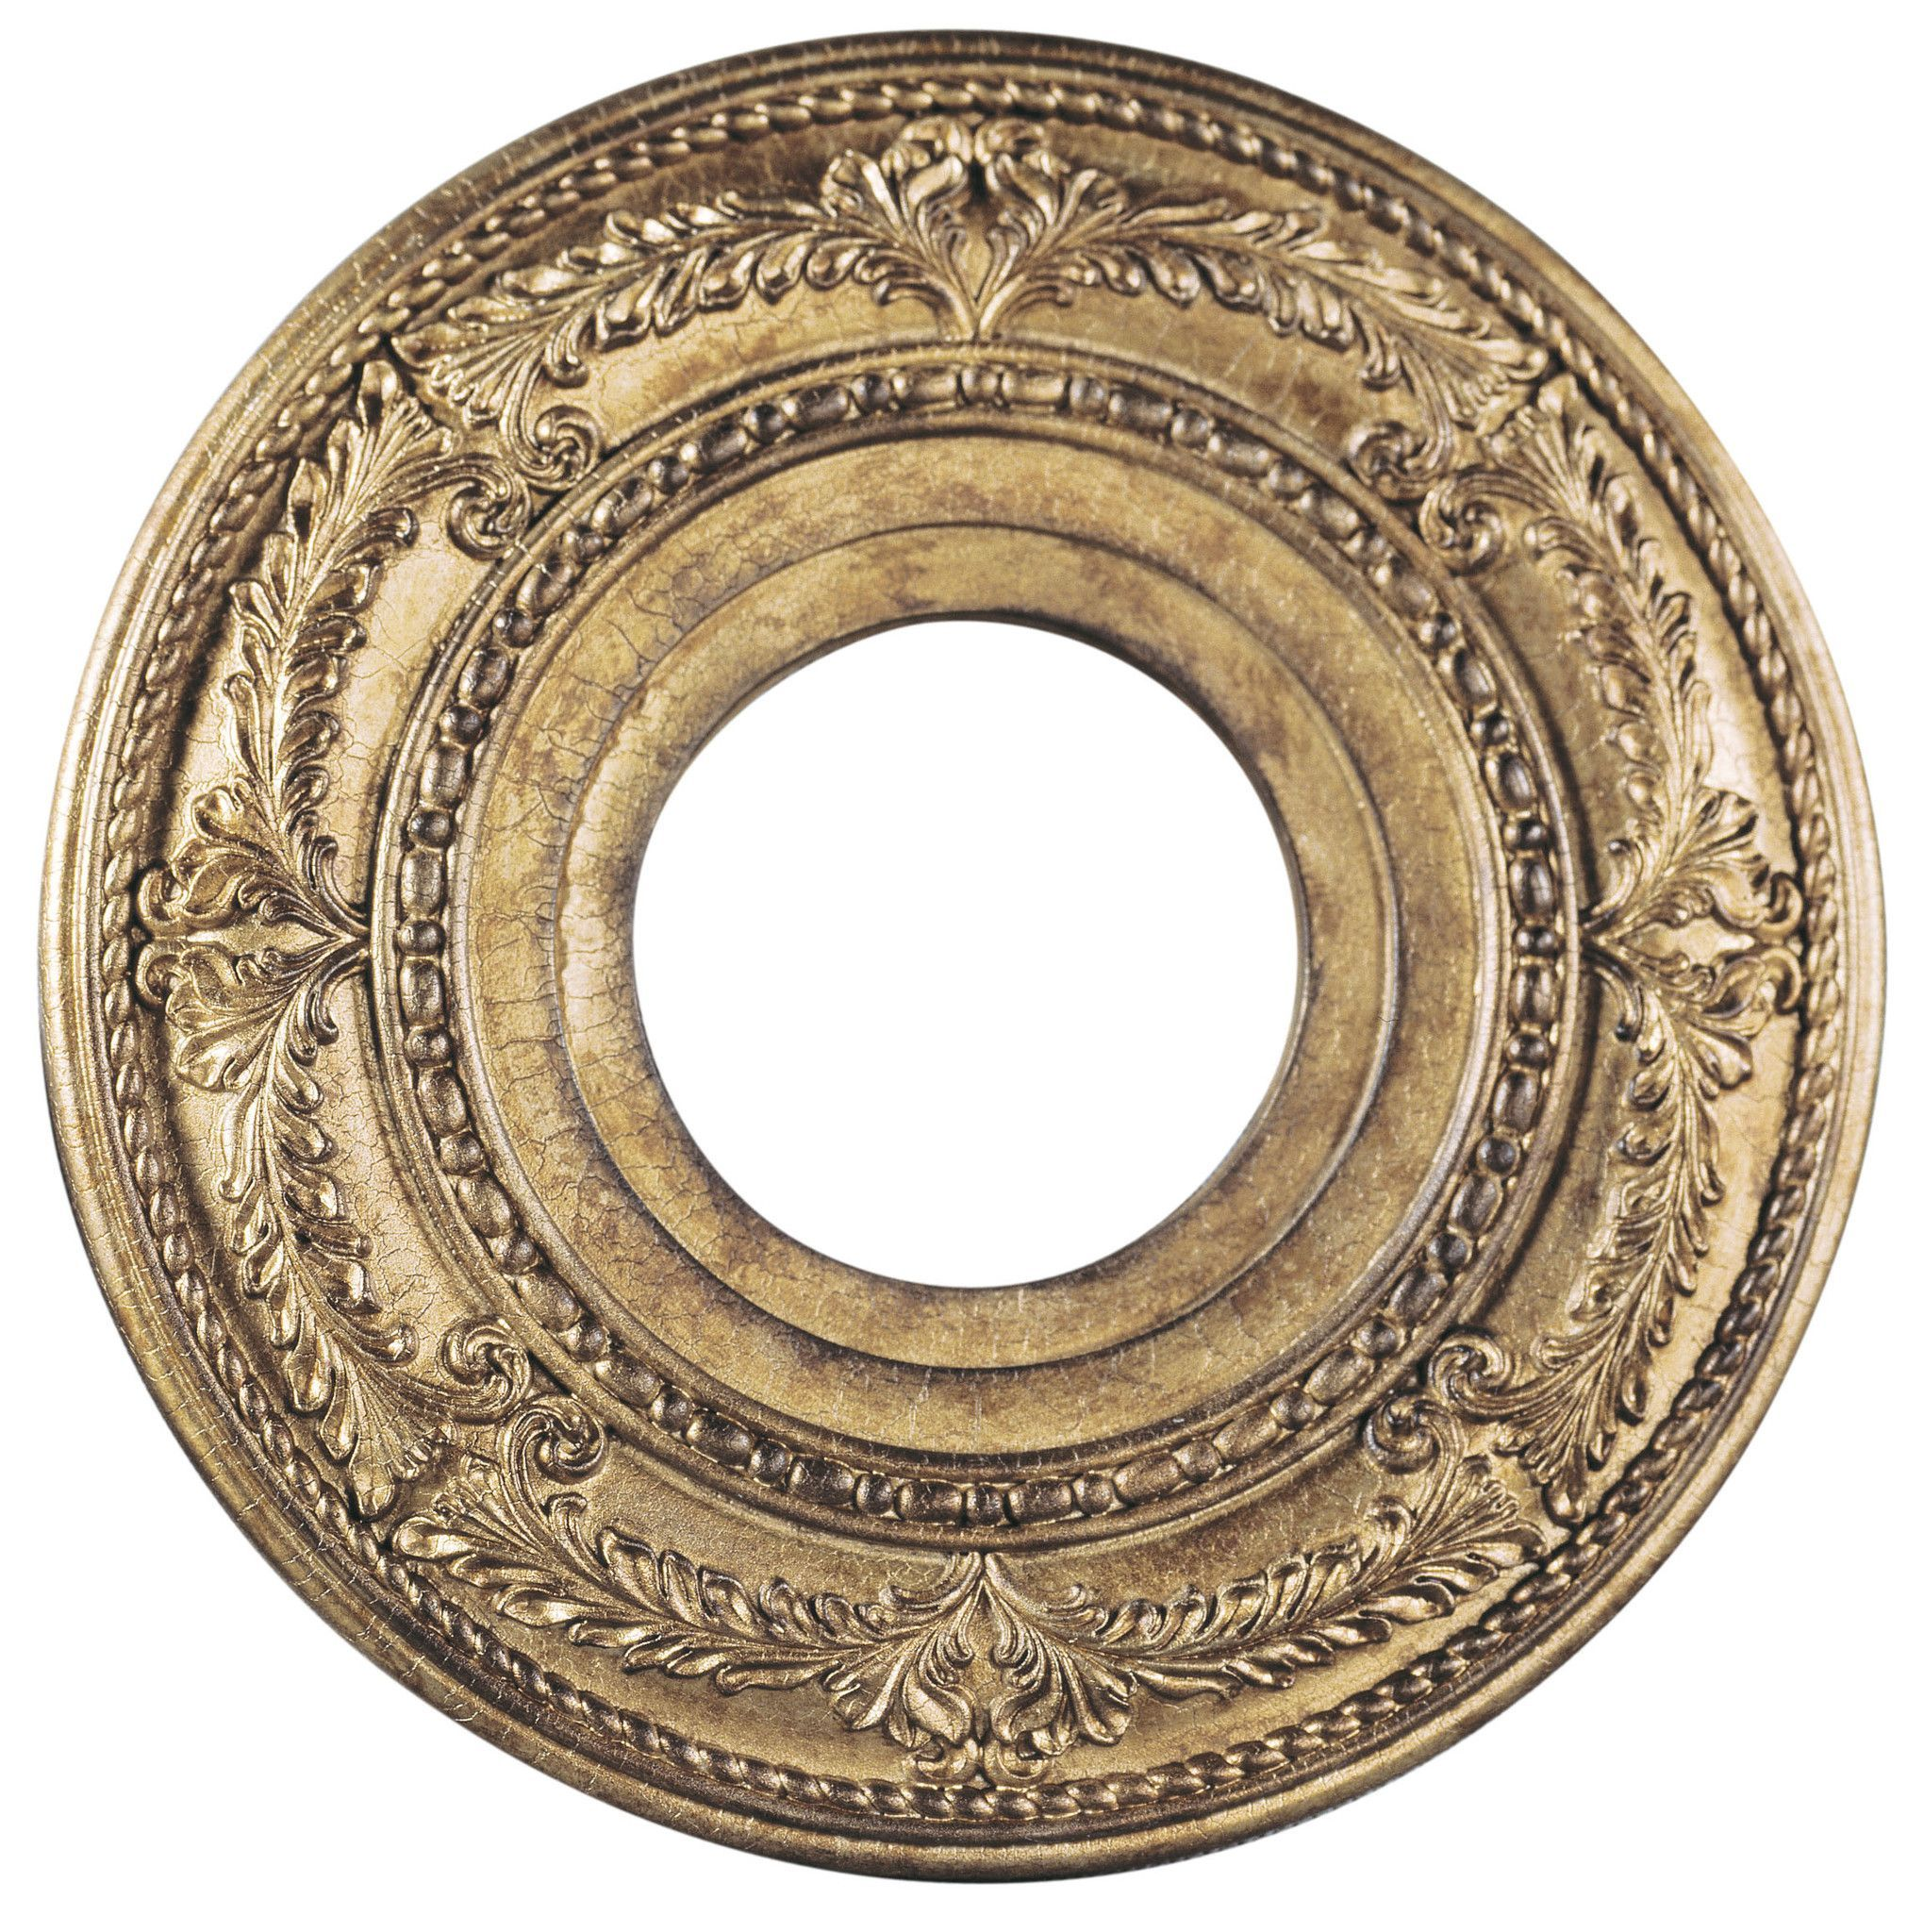 beauty fine deco s painted beautify polyurethane to pin strenght gold copper offers ceiling your bronze in abode medallion hand art and strength brass